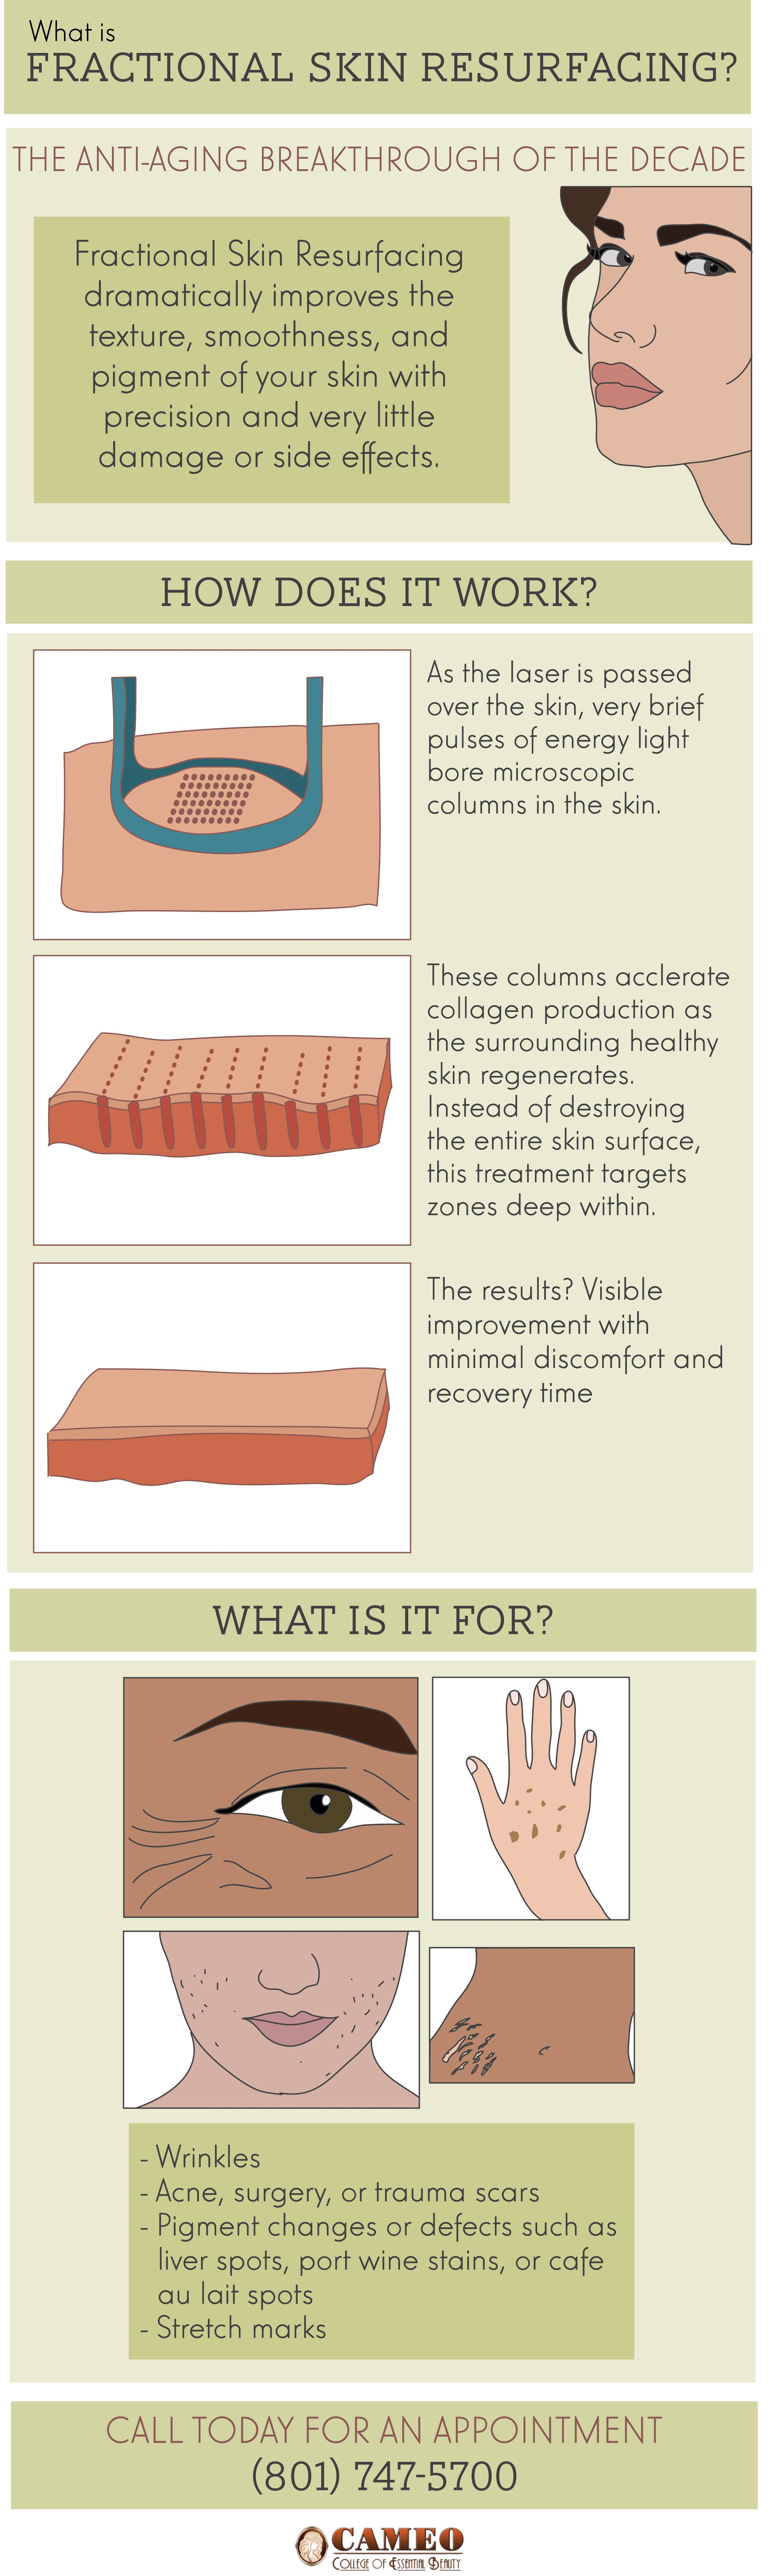 What Is Fractional Skin Resurfacing Infographic